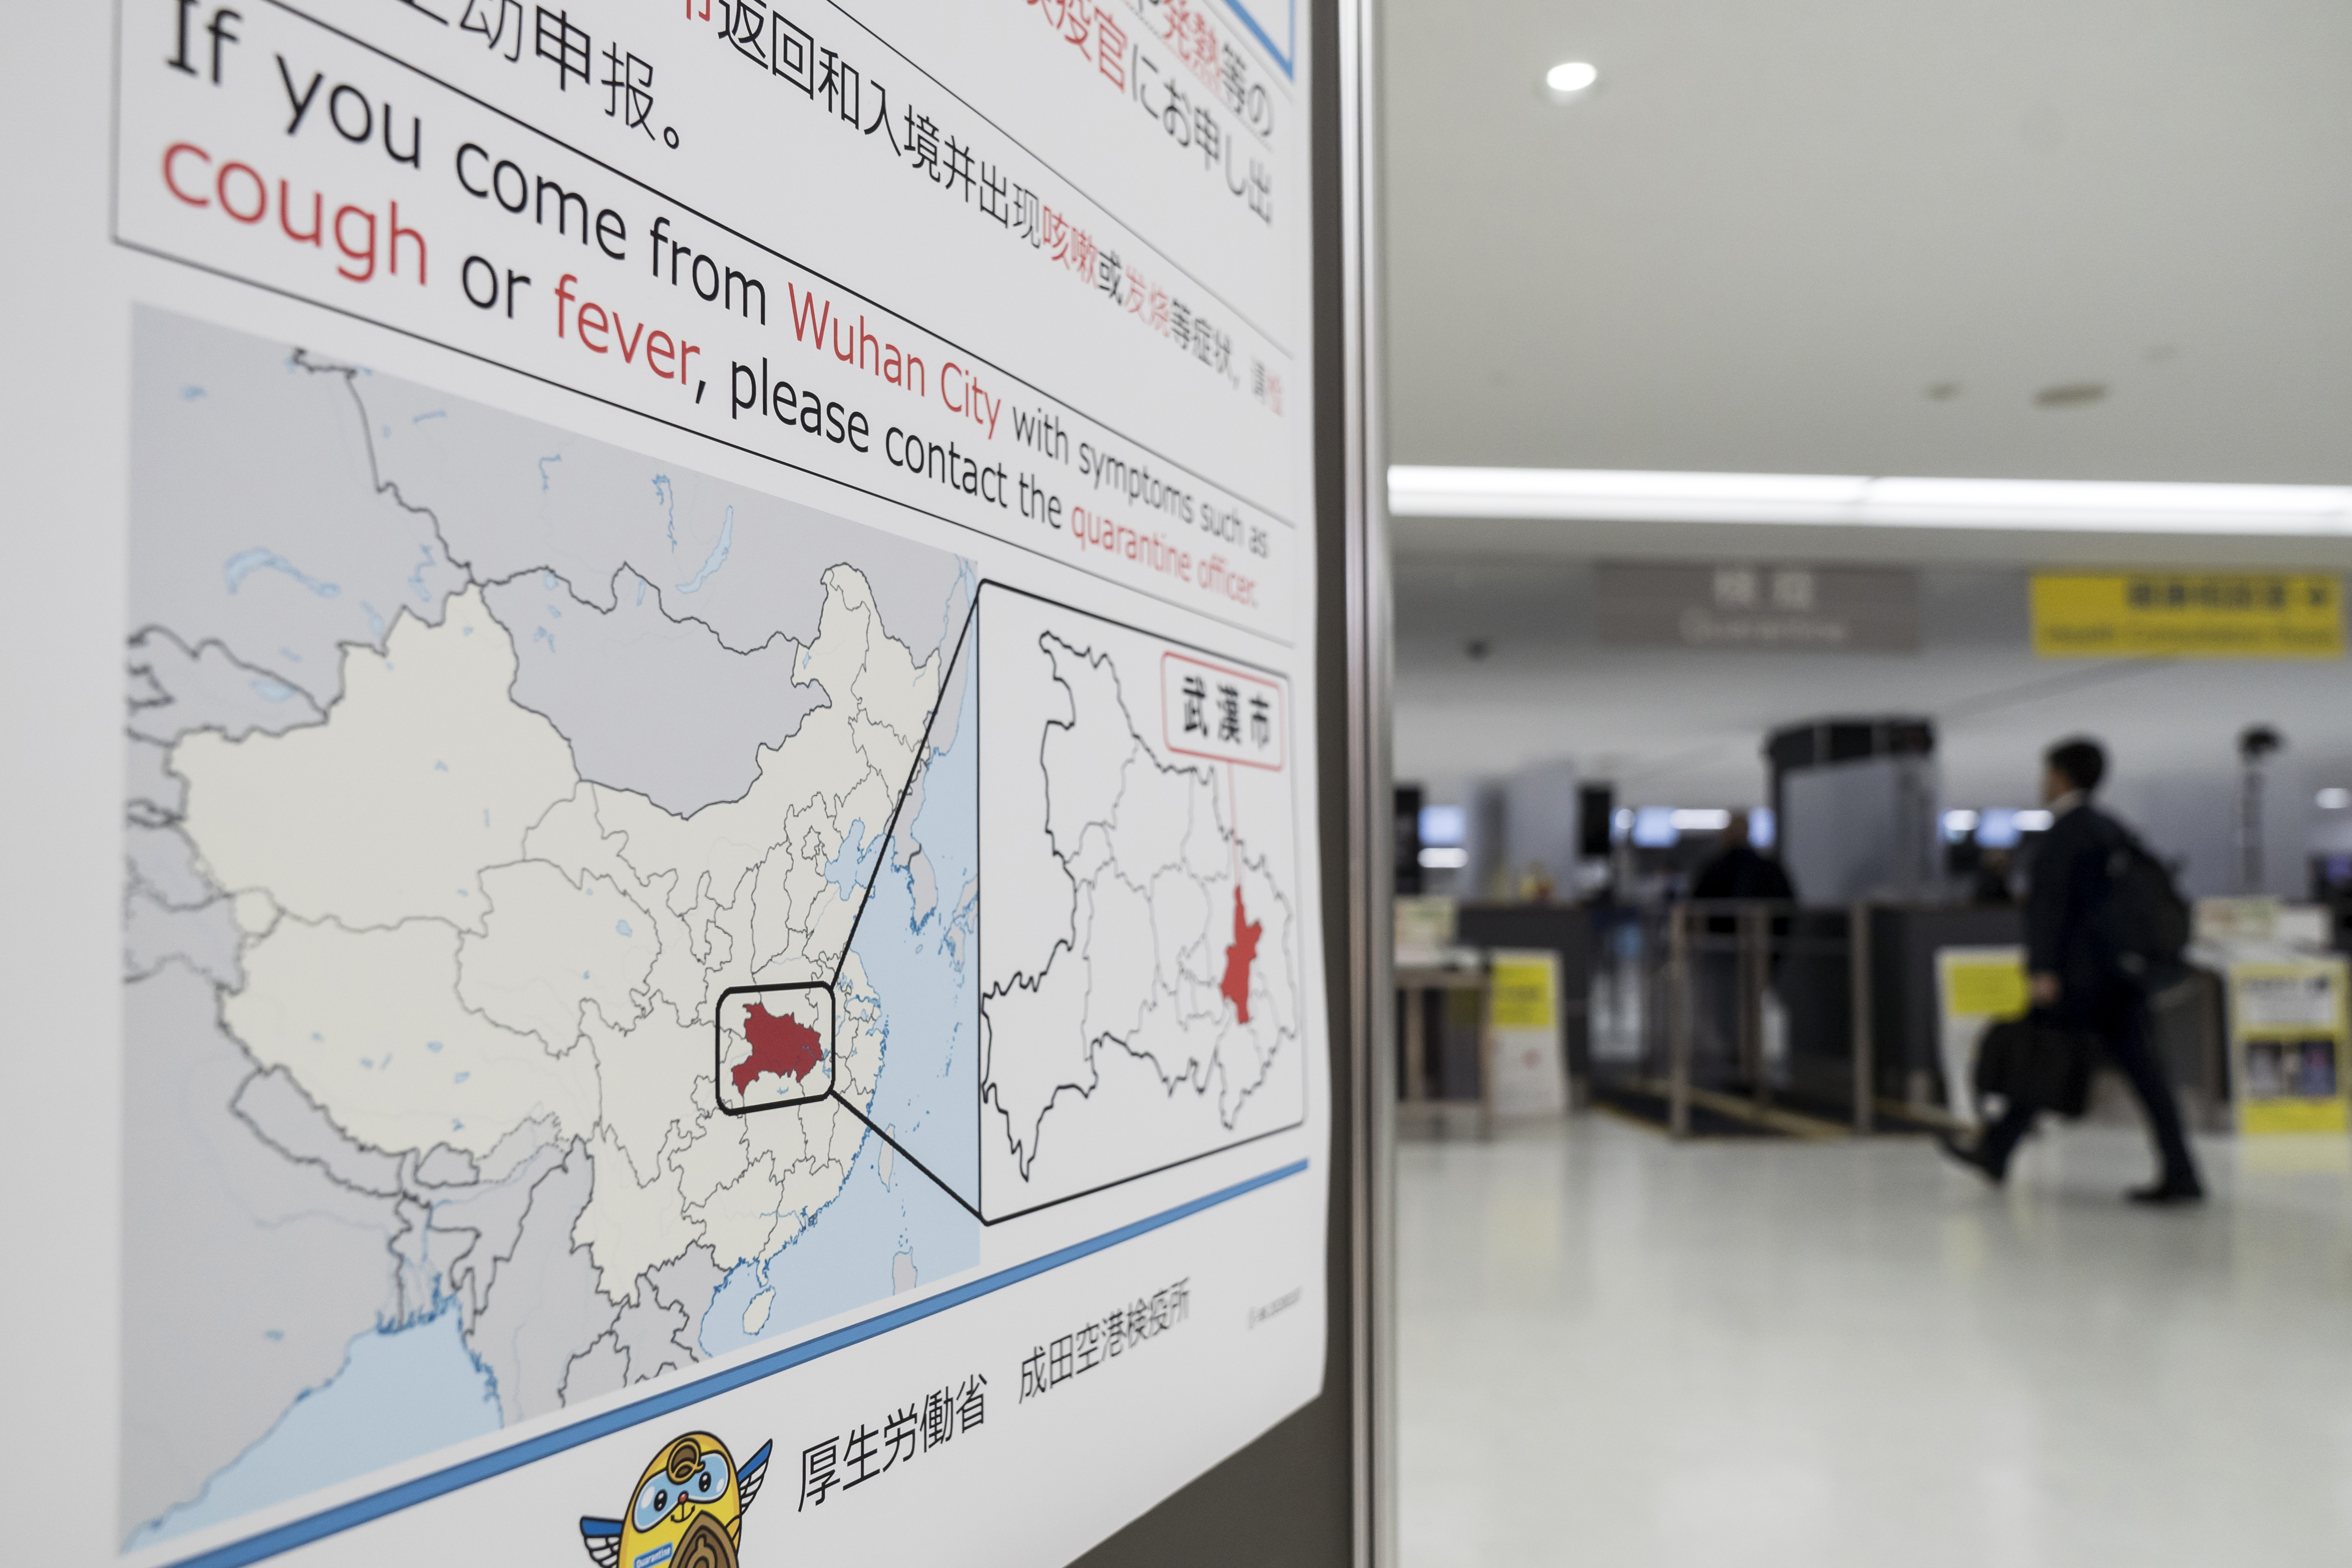 A passenger walks past a notice for  passengers from Wuhan, China displayed near a quarantine station at Narita airport on Jan. 17, 2020 in Narita, Japan.